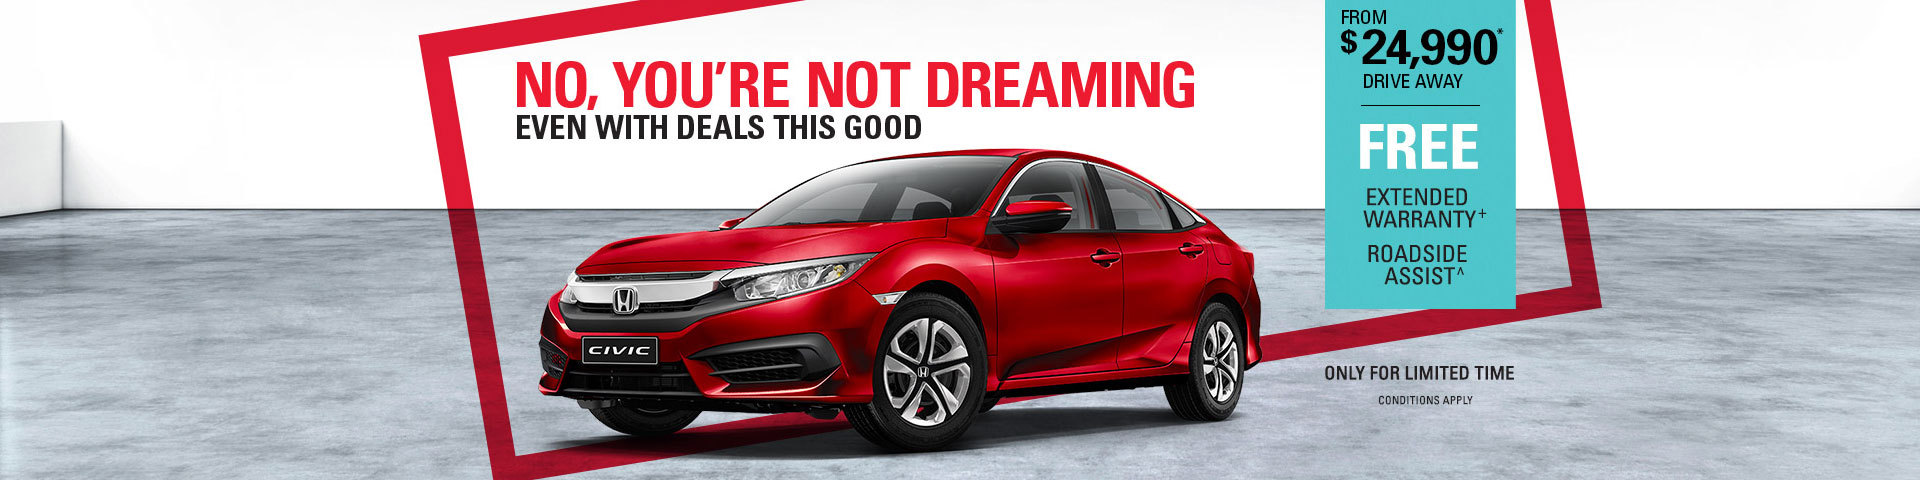 No, You're Not Dreaming - Honda Civic from $24,990